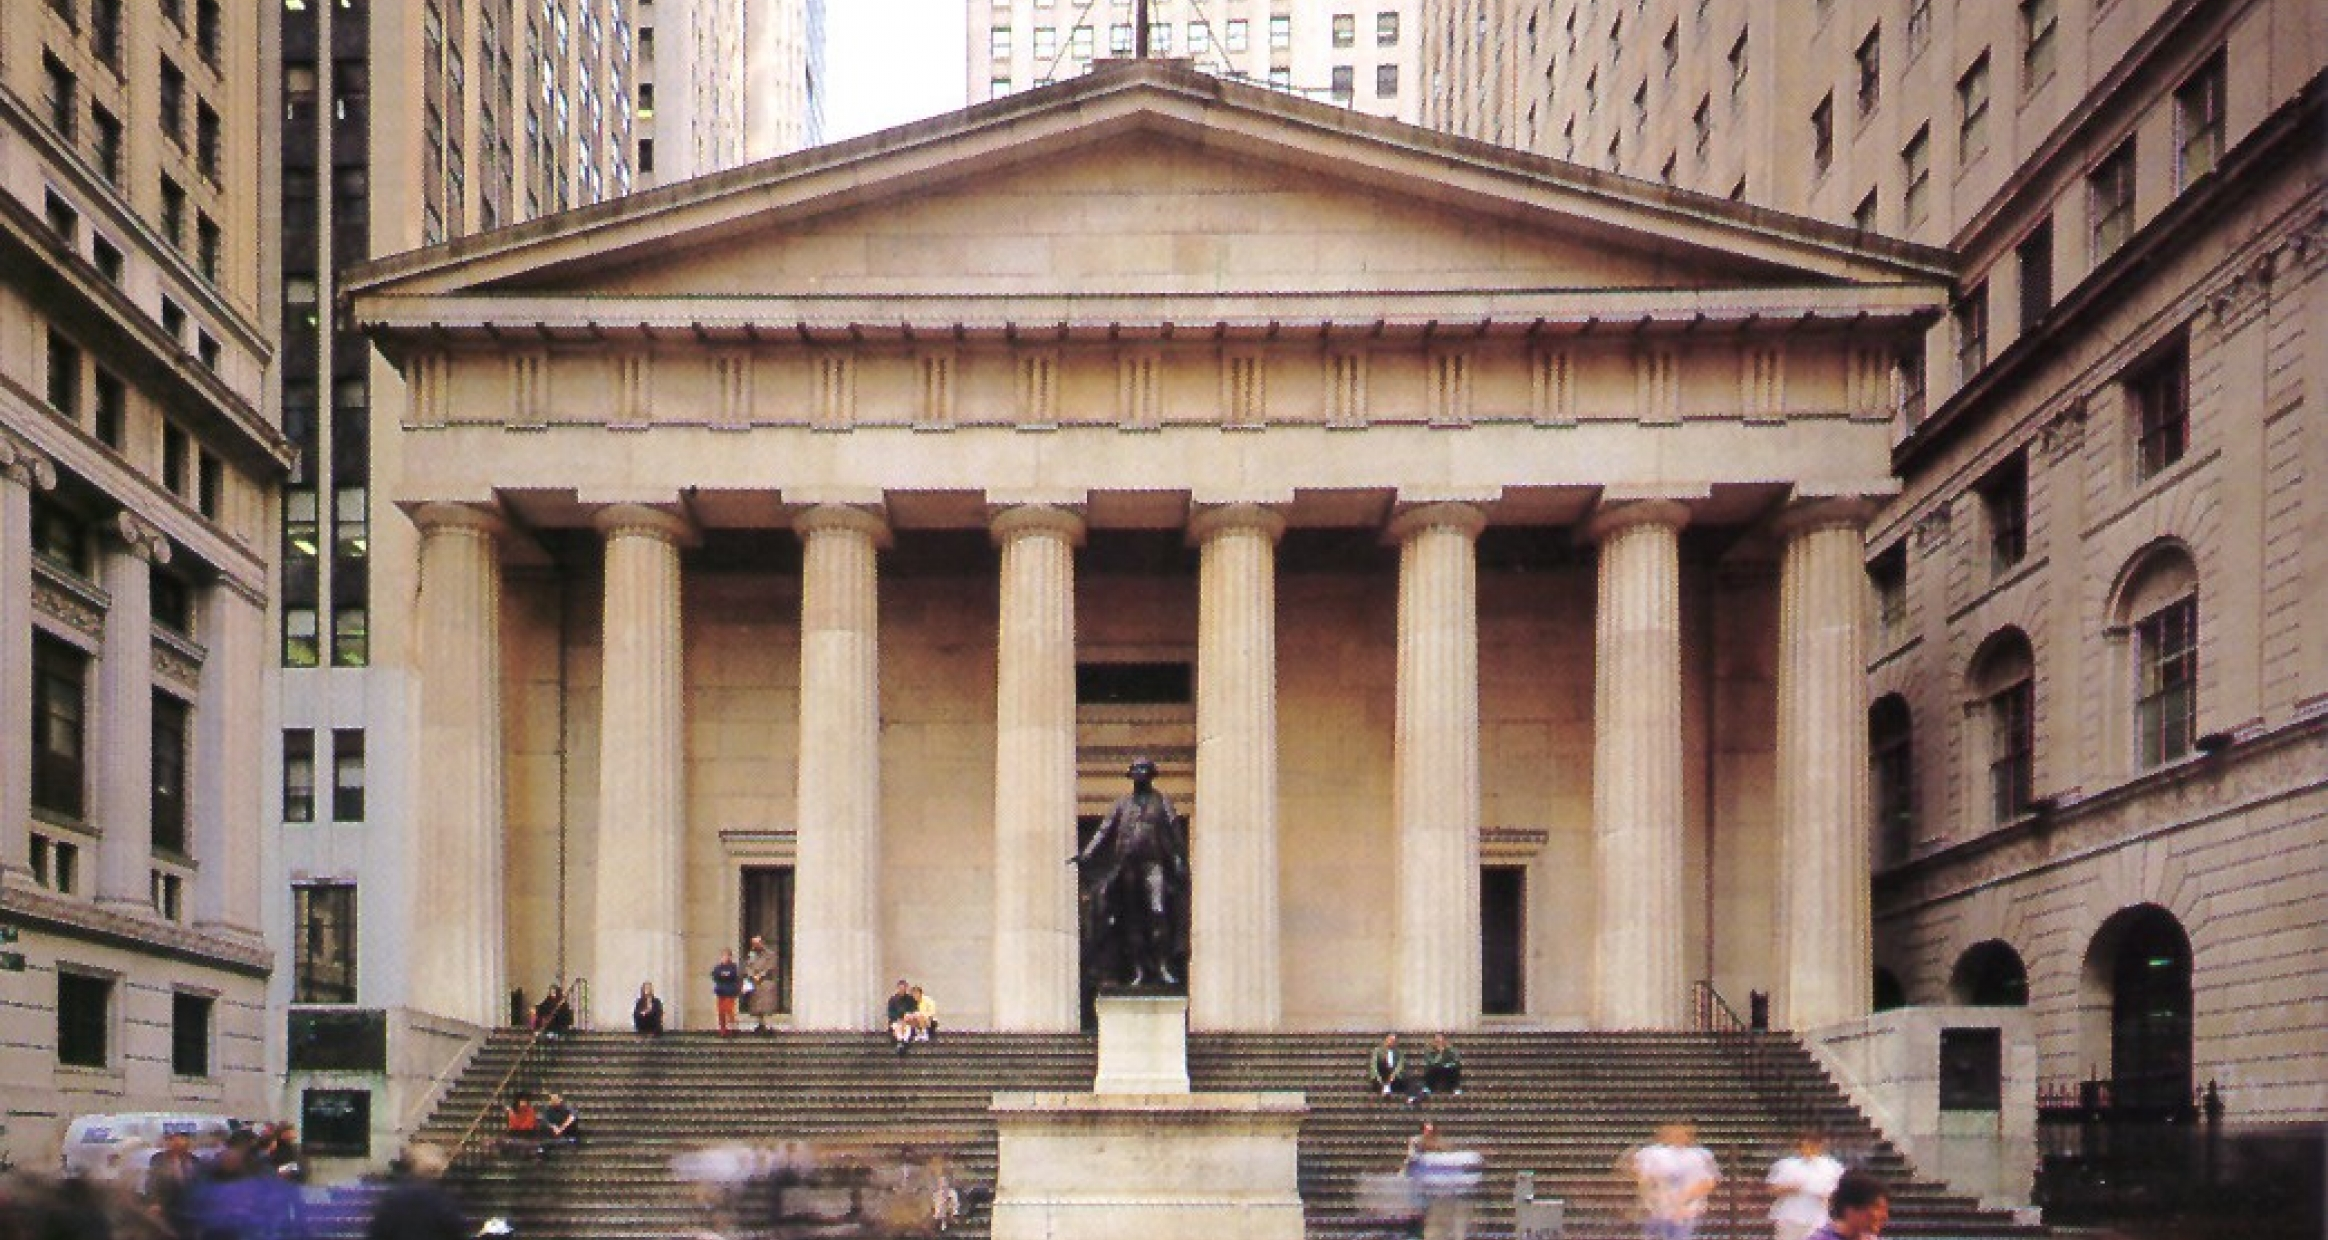 Federal Hall National Memorial in New York City